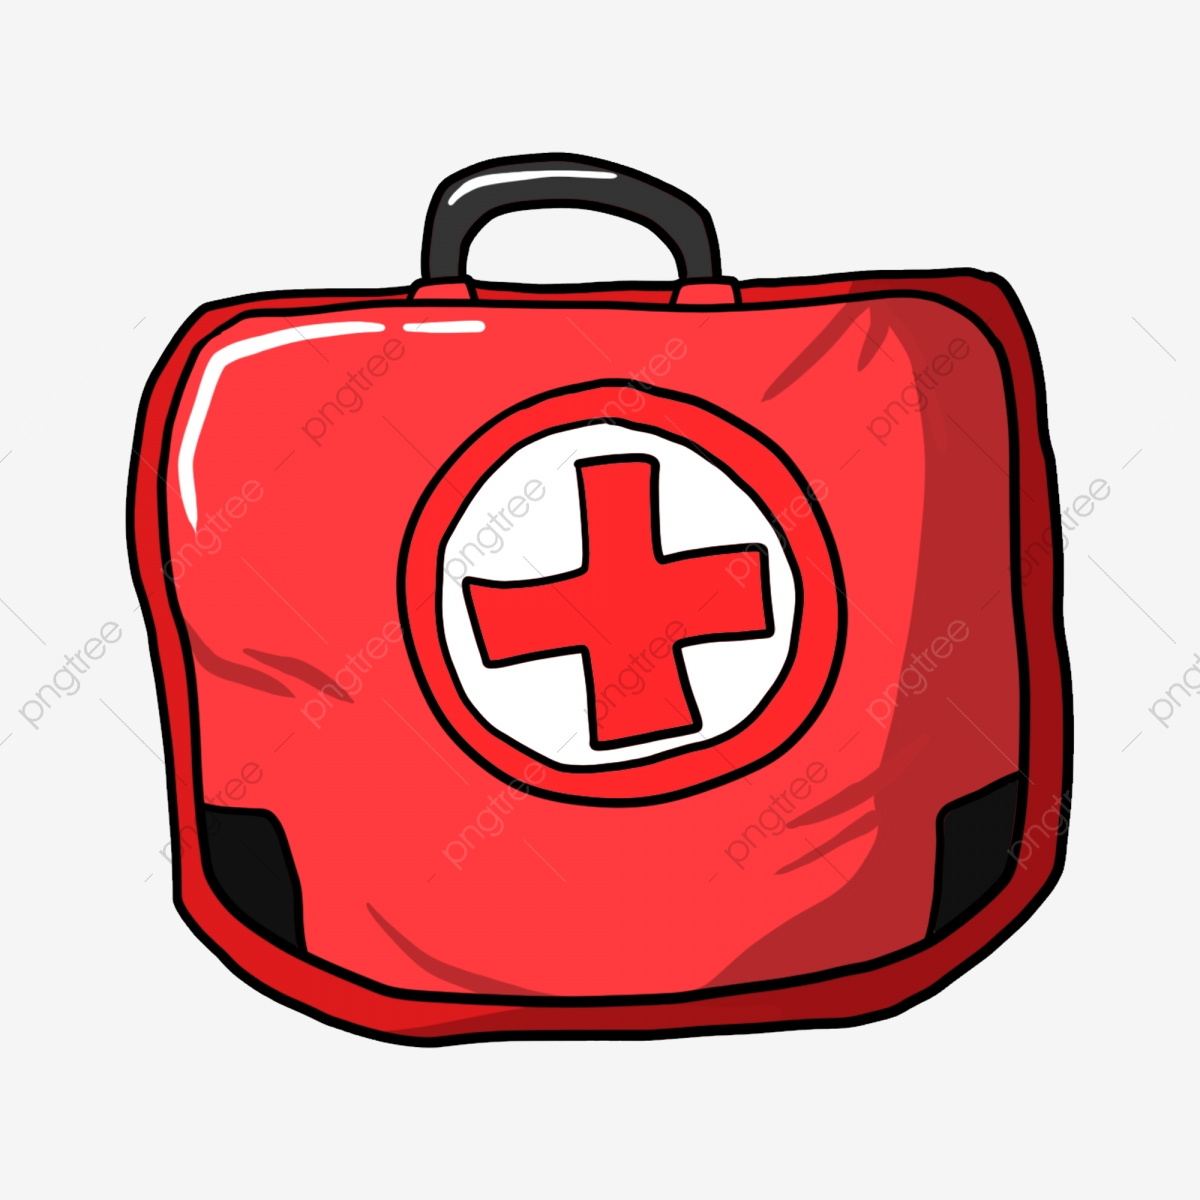 First Aid Cartoon Png - Red First Aid Kit Red Cross Society Red Bag Cartoon Illustration ...